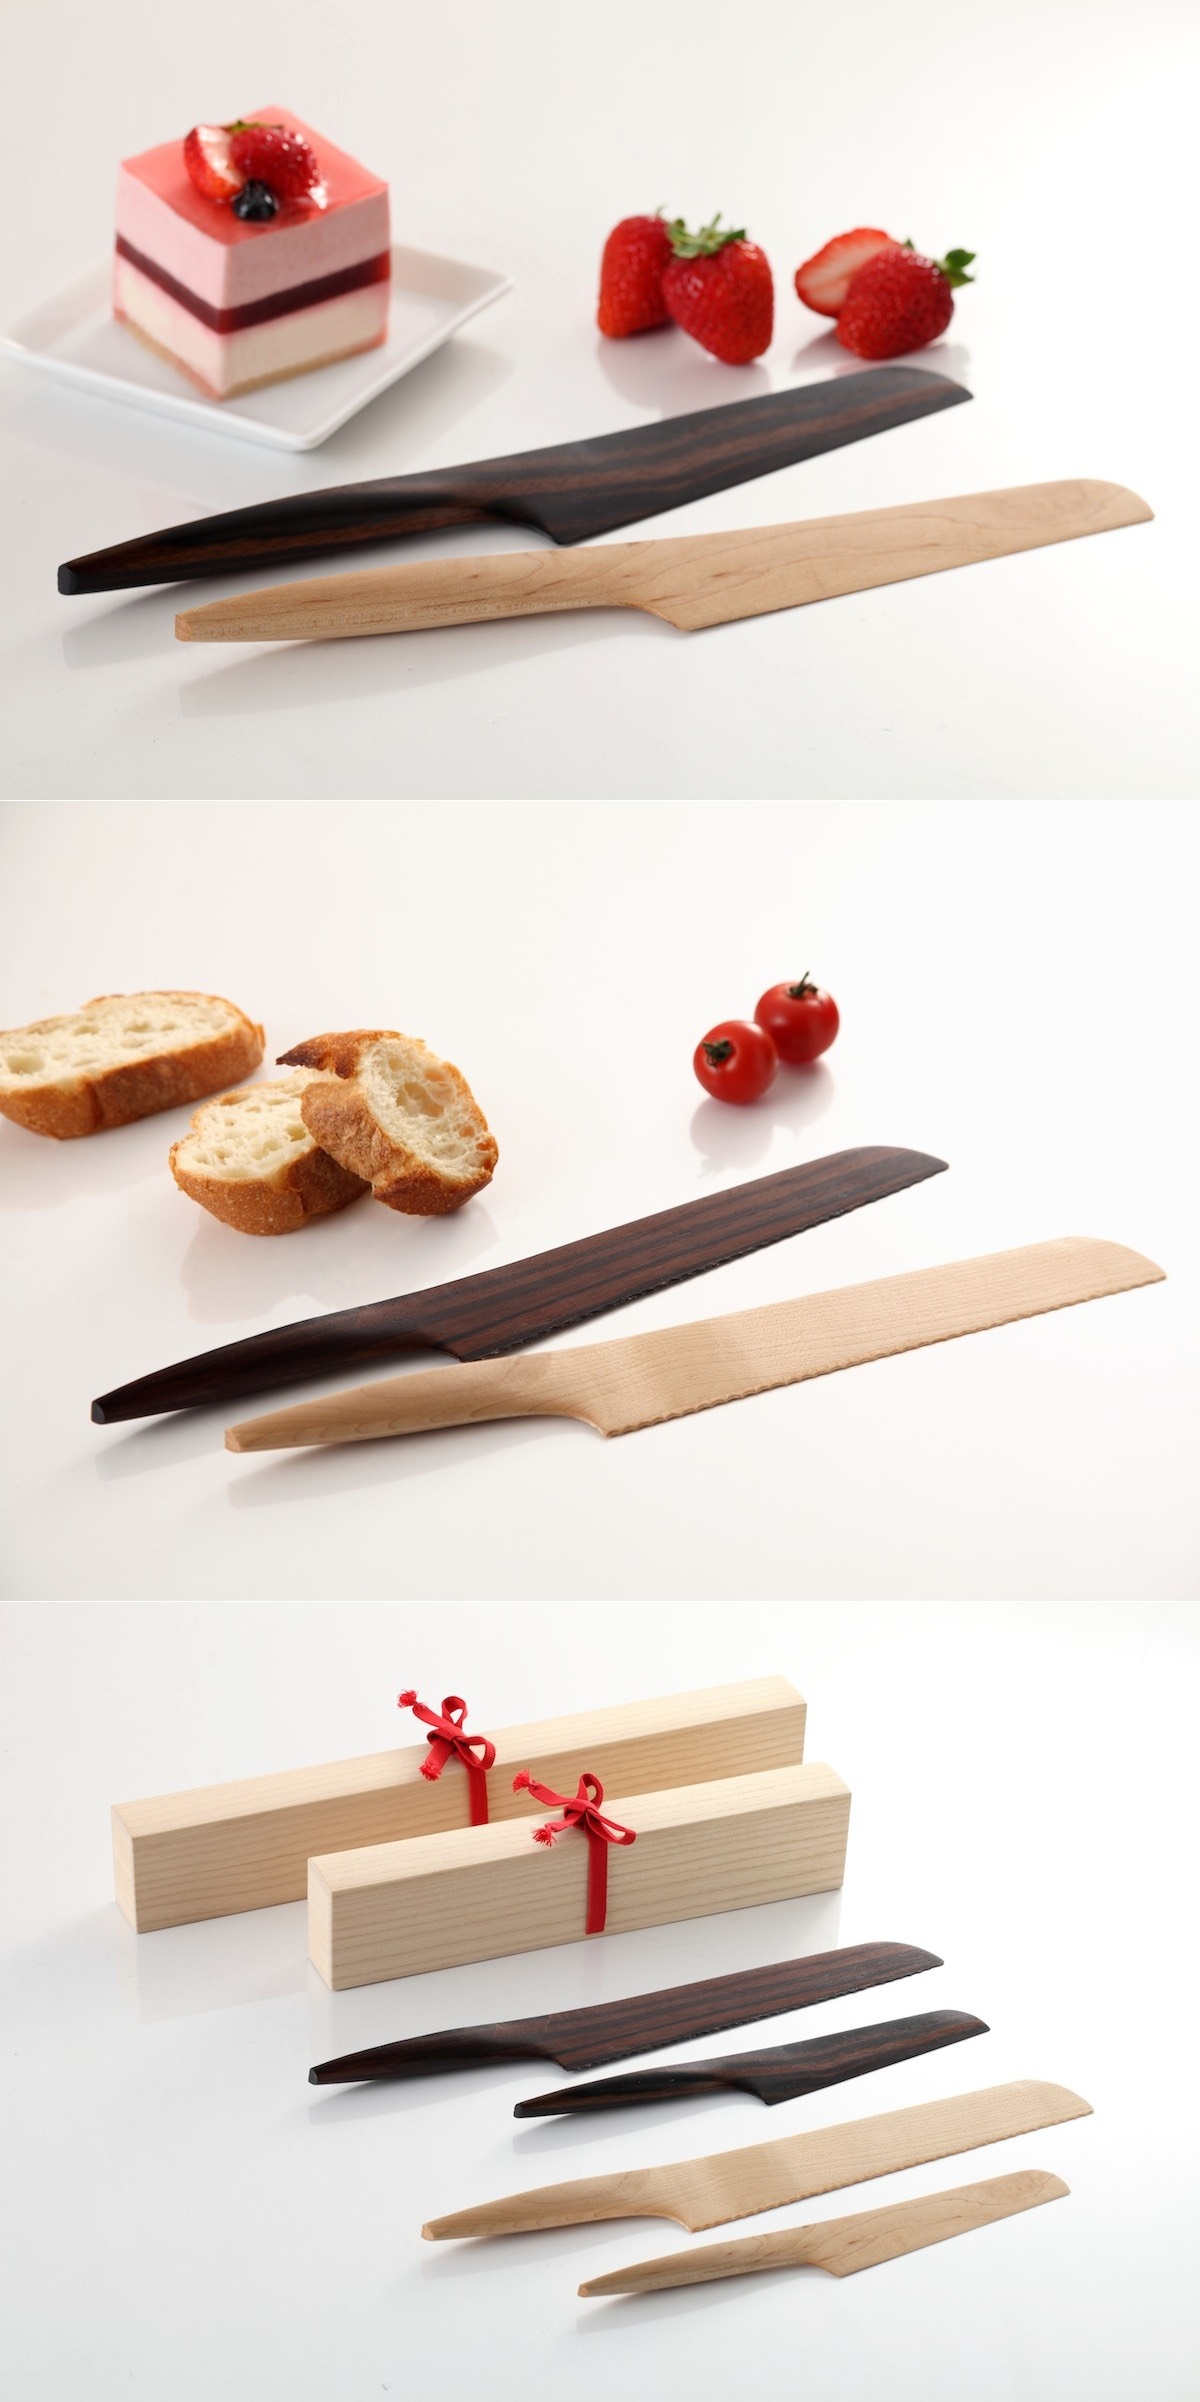 28_wooden-knives.